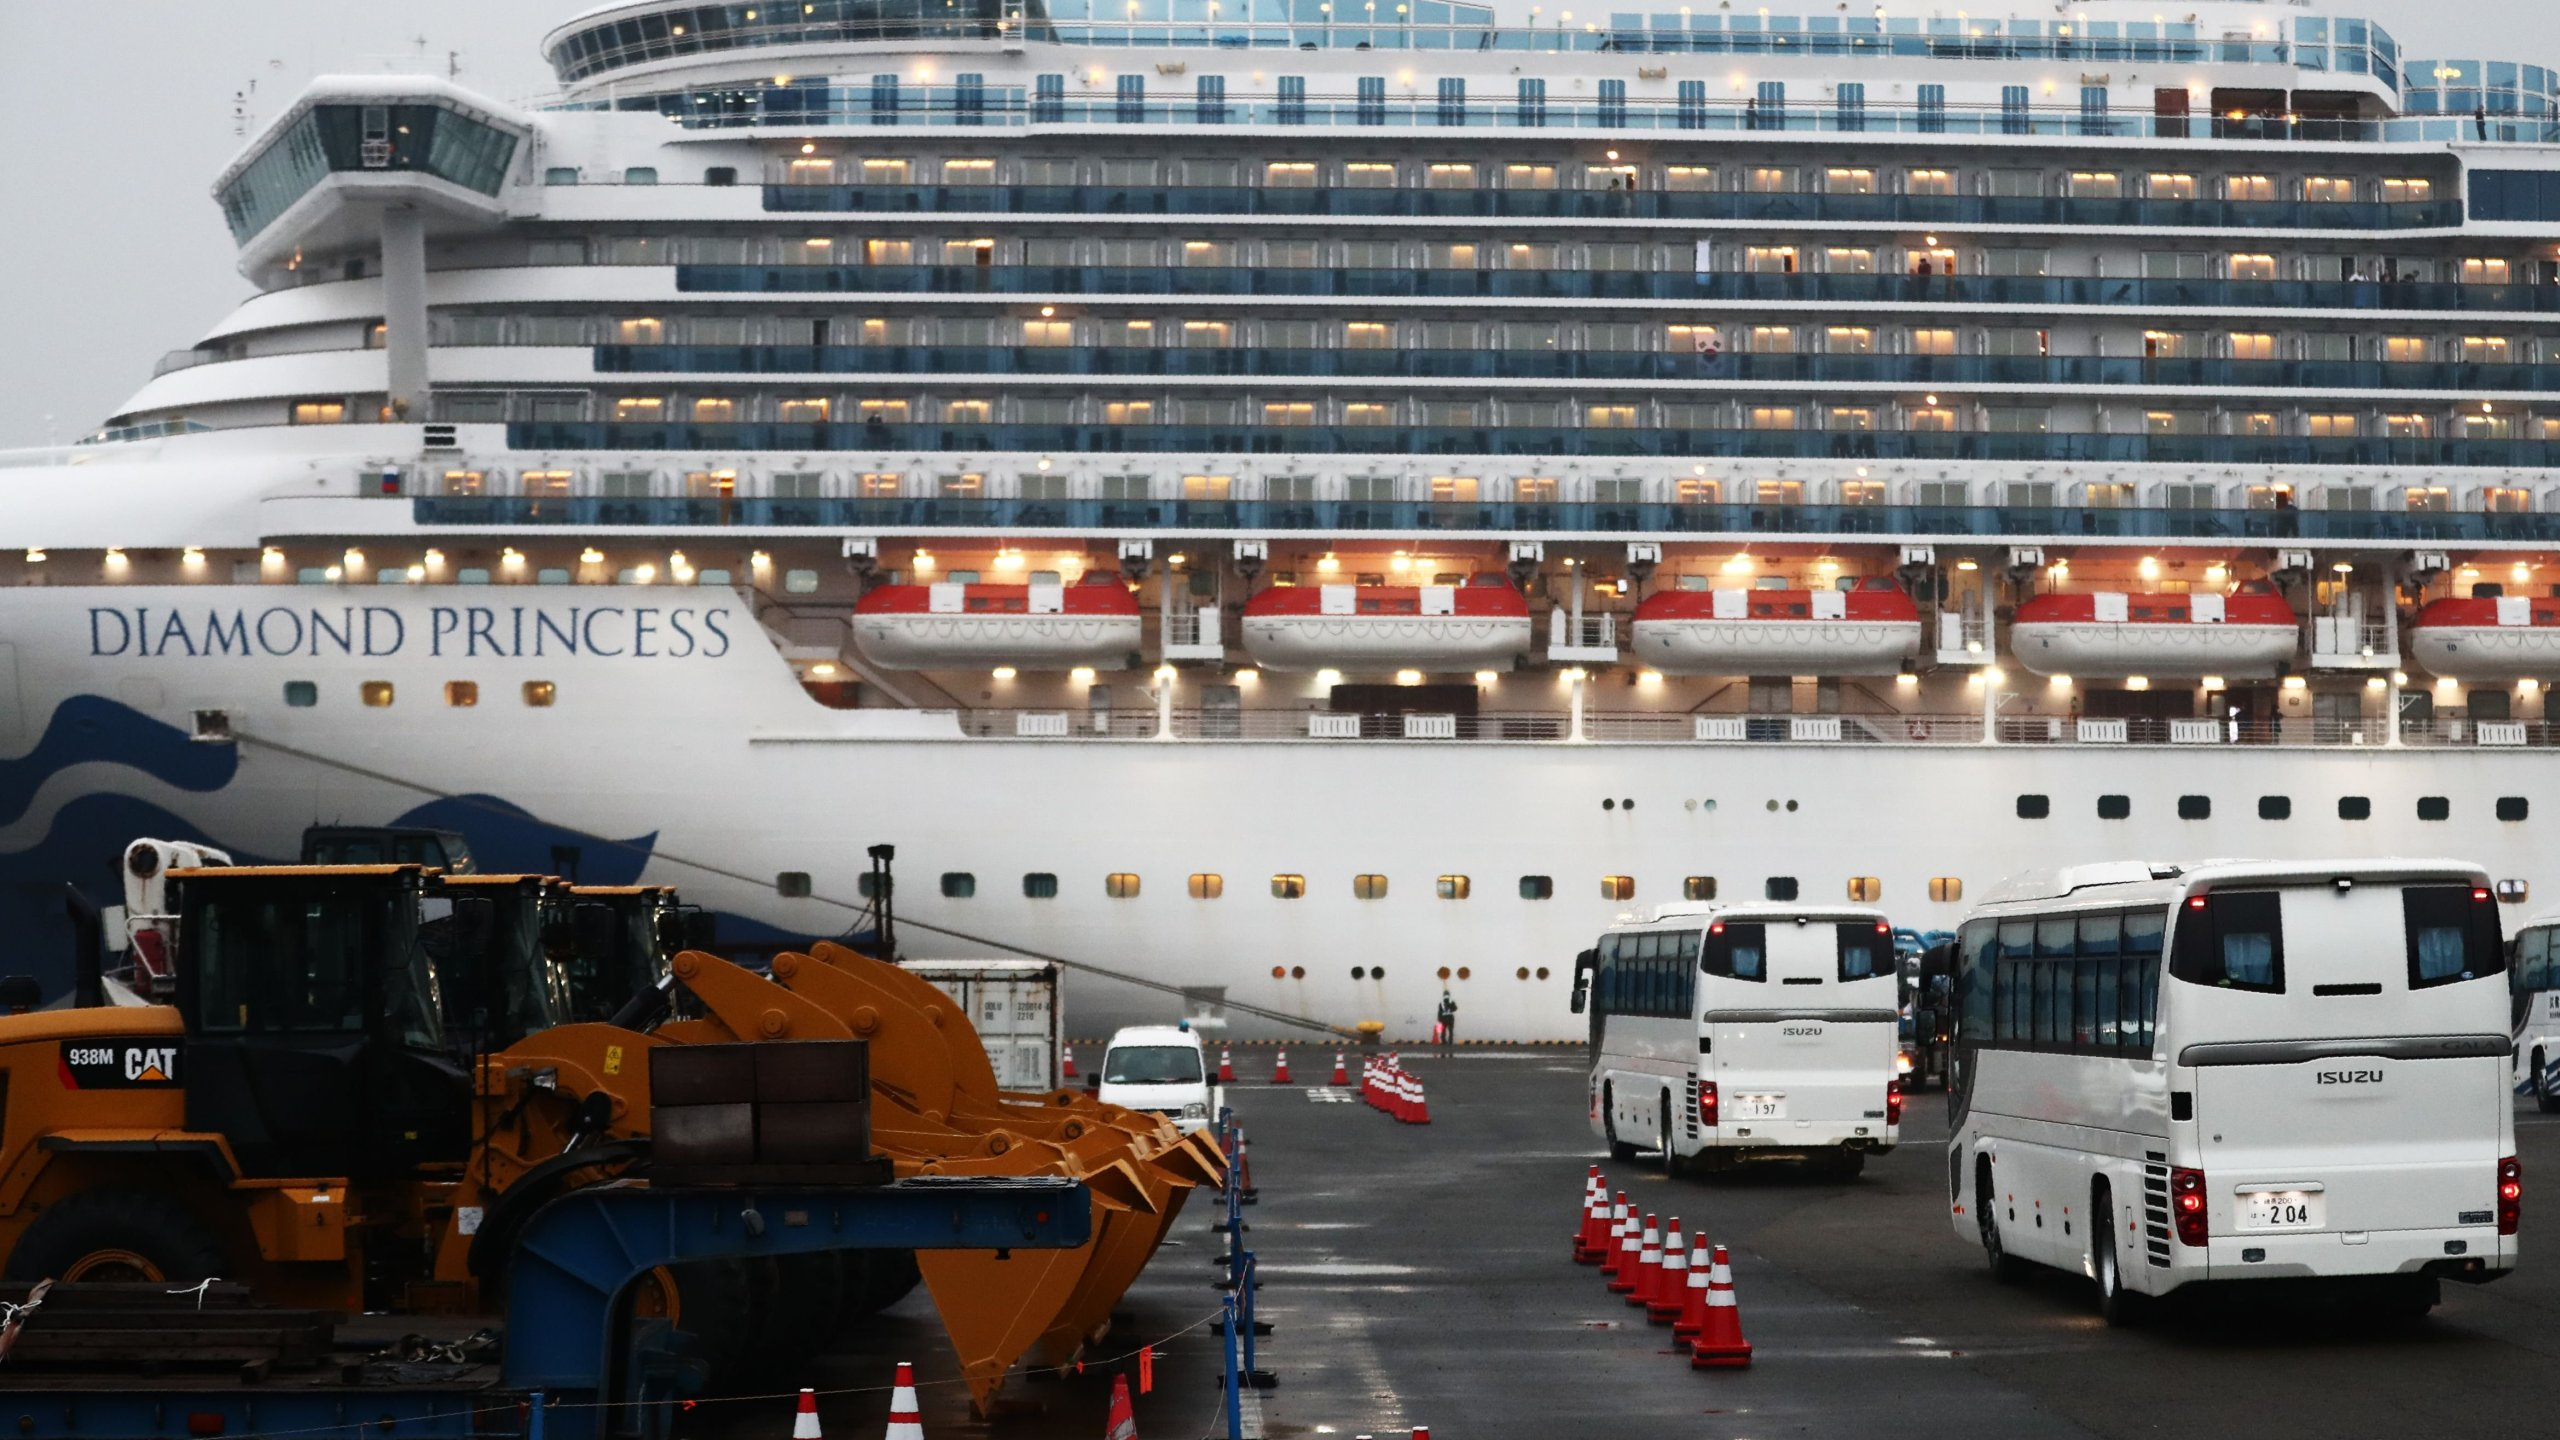 Two buses arrive next to the Diamond Princess cruise ship, with people quarantined onboard due to fears of the new coronavirus, at the Daikaku Pier Cruise Terminal in Yokohama port on Feb.16, 2020.(Credit: BEHROUZ MEHRI/AFP via Getty Images)